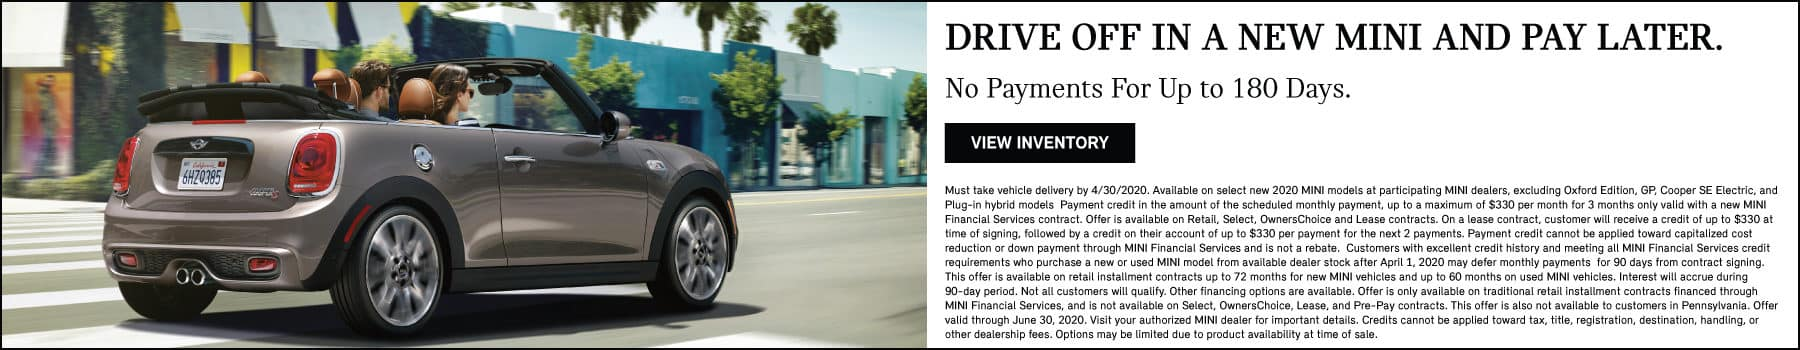 DRIVE OFF IN A NEW MINI AND PAY LATER. NO PAYMENTS UP FOR UP TO 180 DAYS. VIEW INVENTORY BUTTON. SEE DEALER FOR COMPLETE DETAILS.